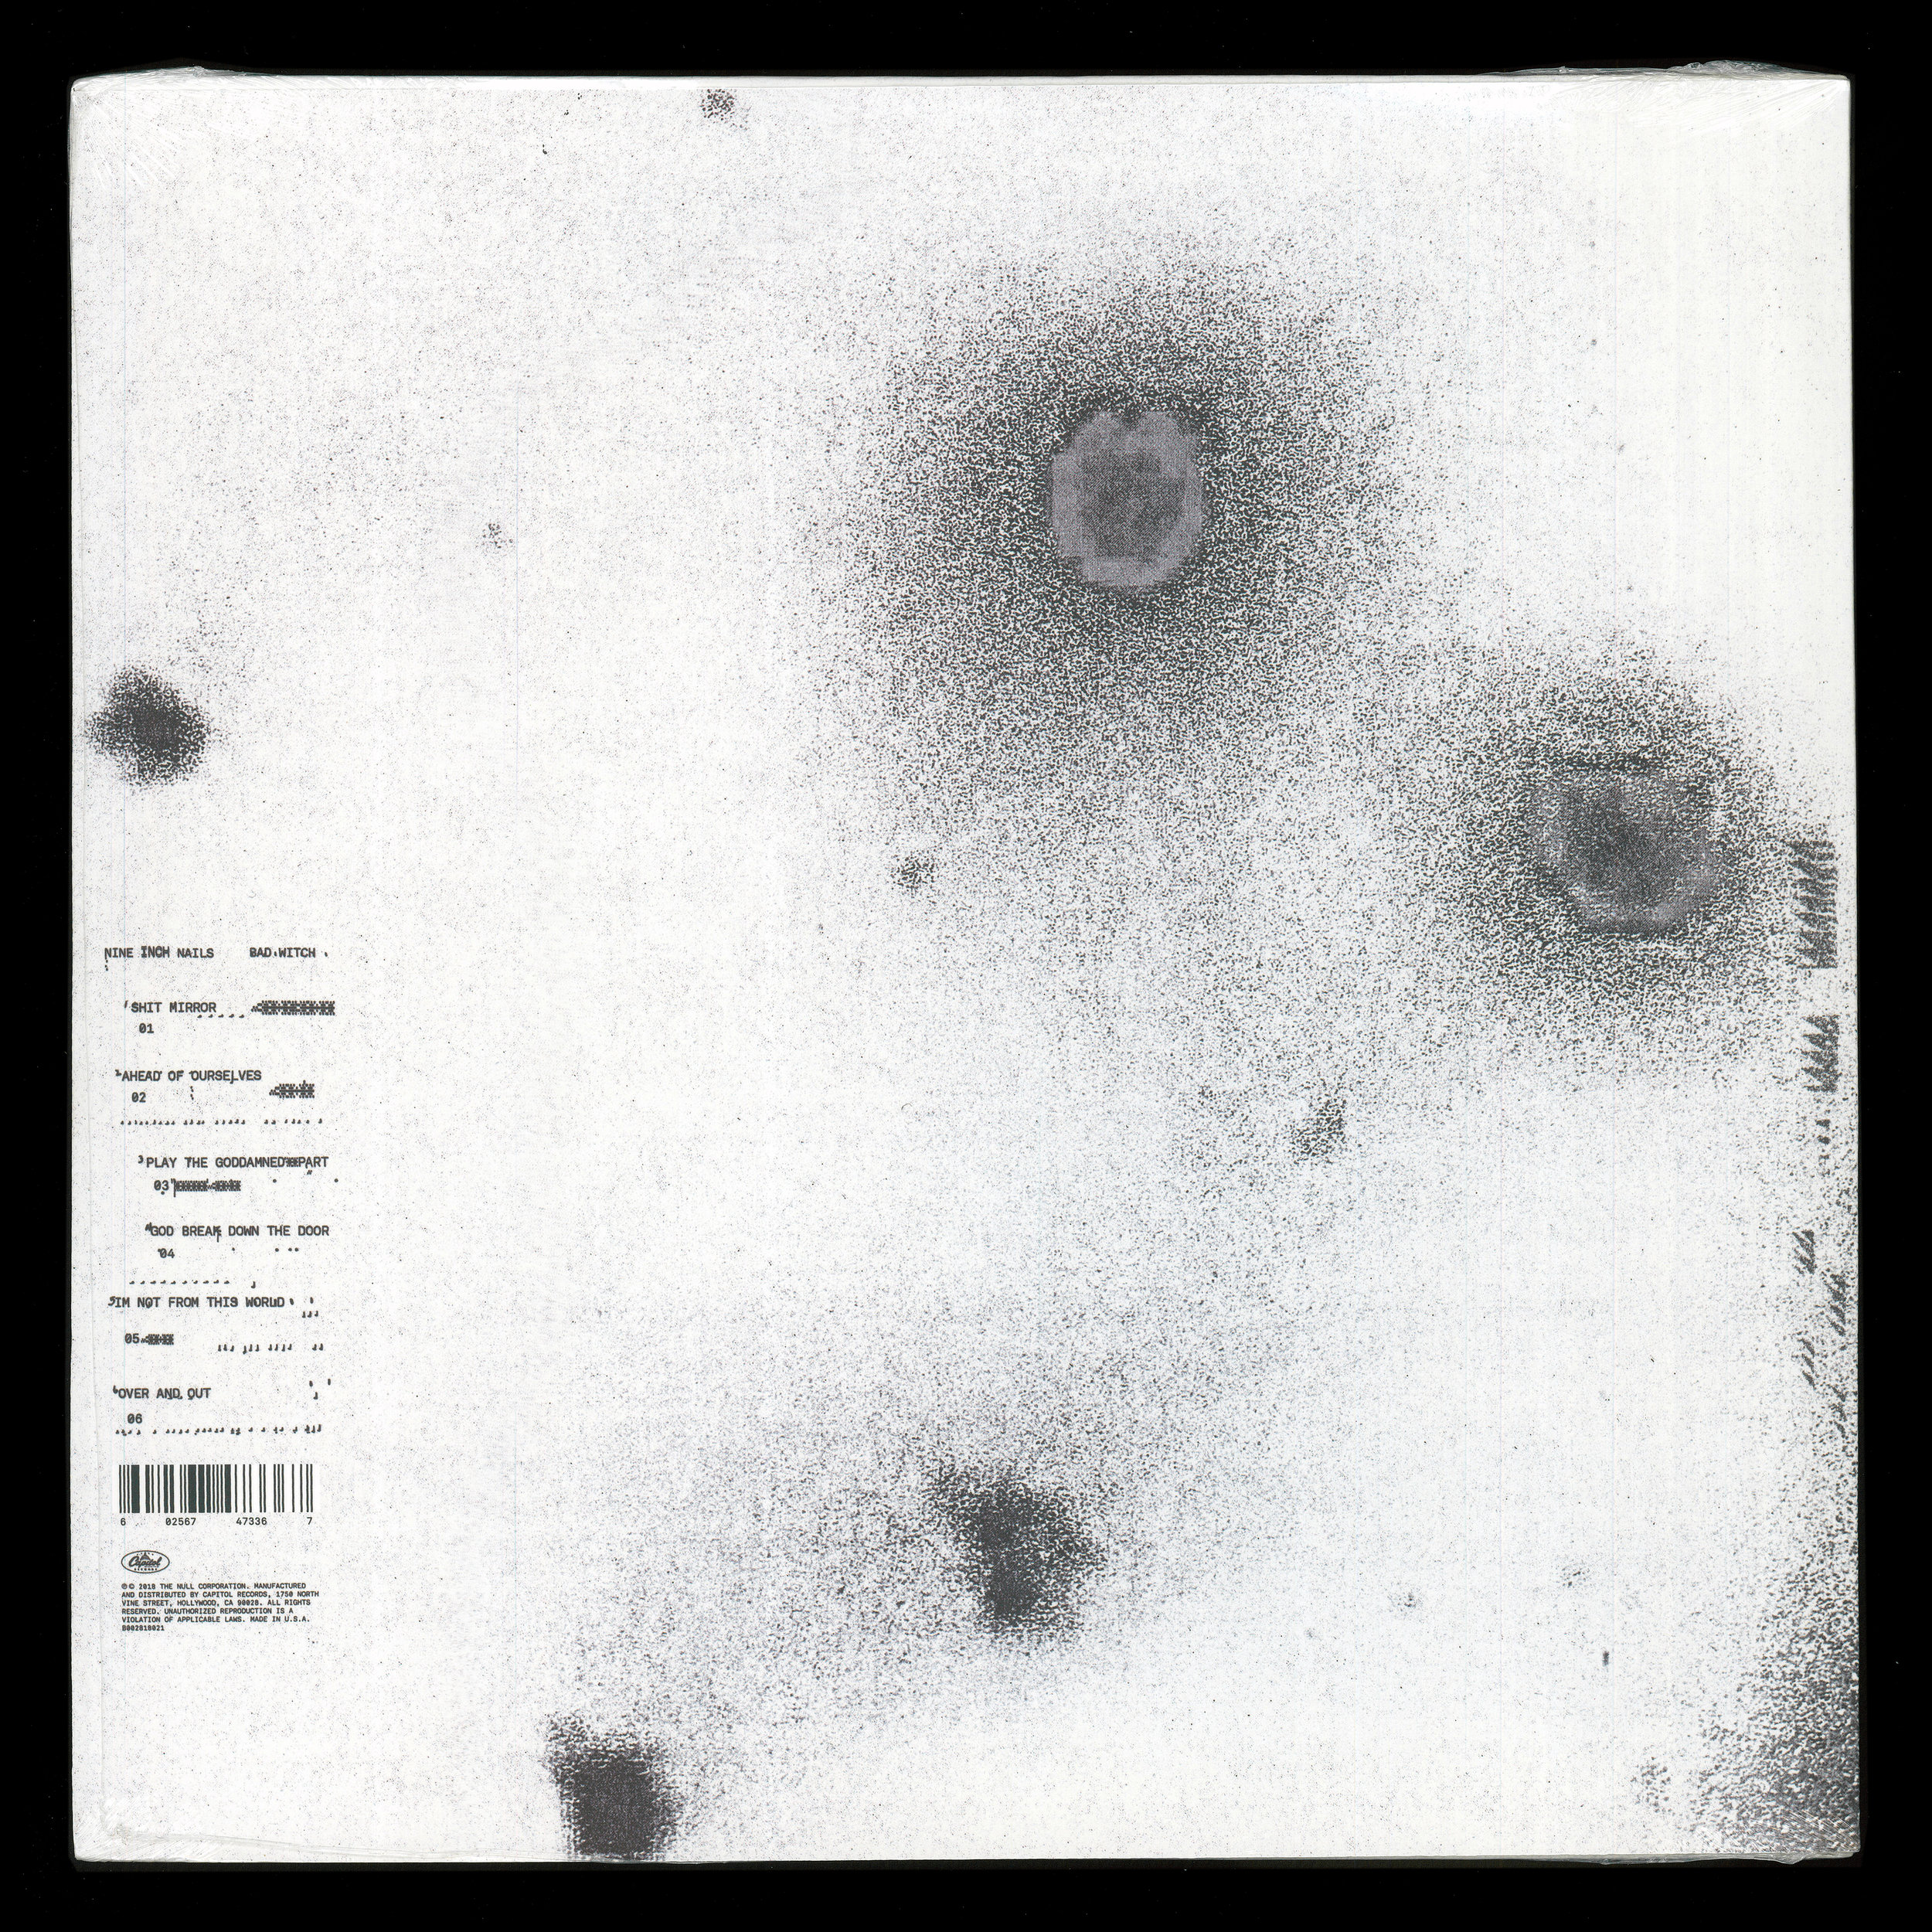 nine inch nails - bad witch - lp - back web.jpg